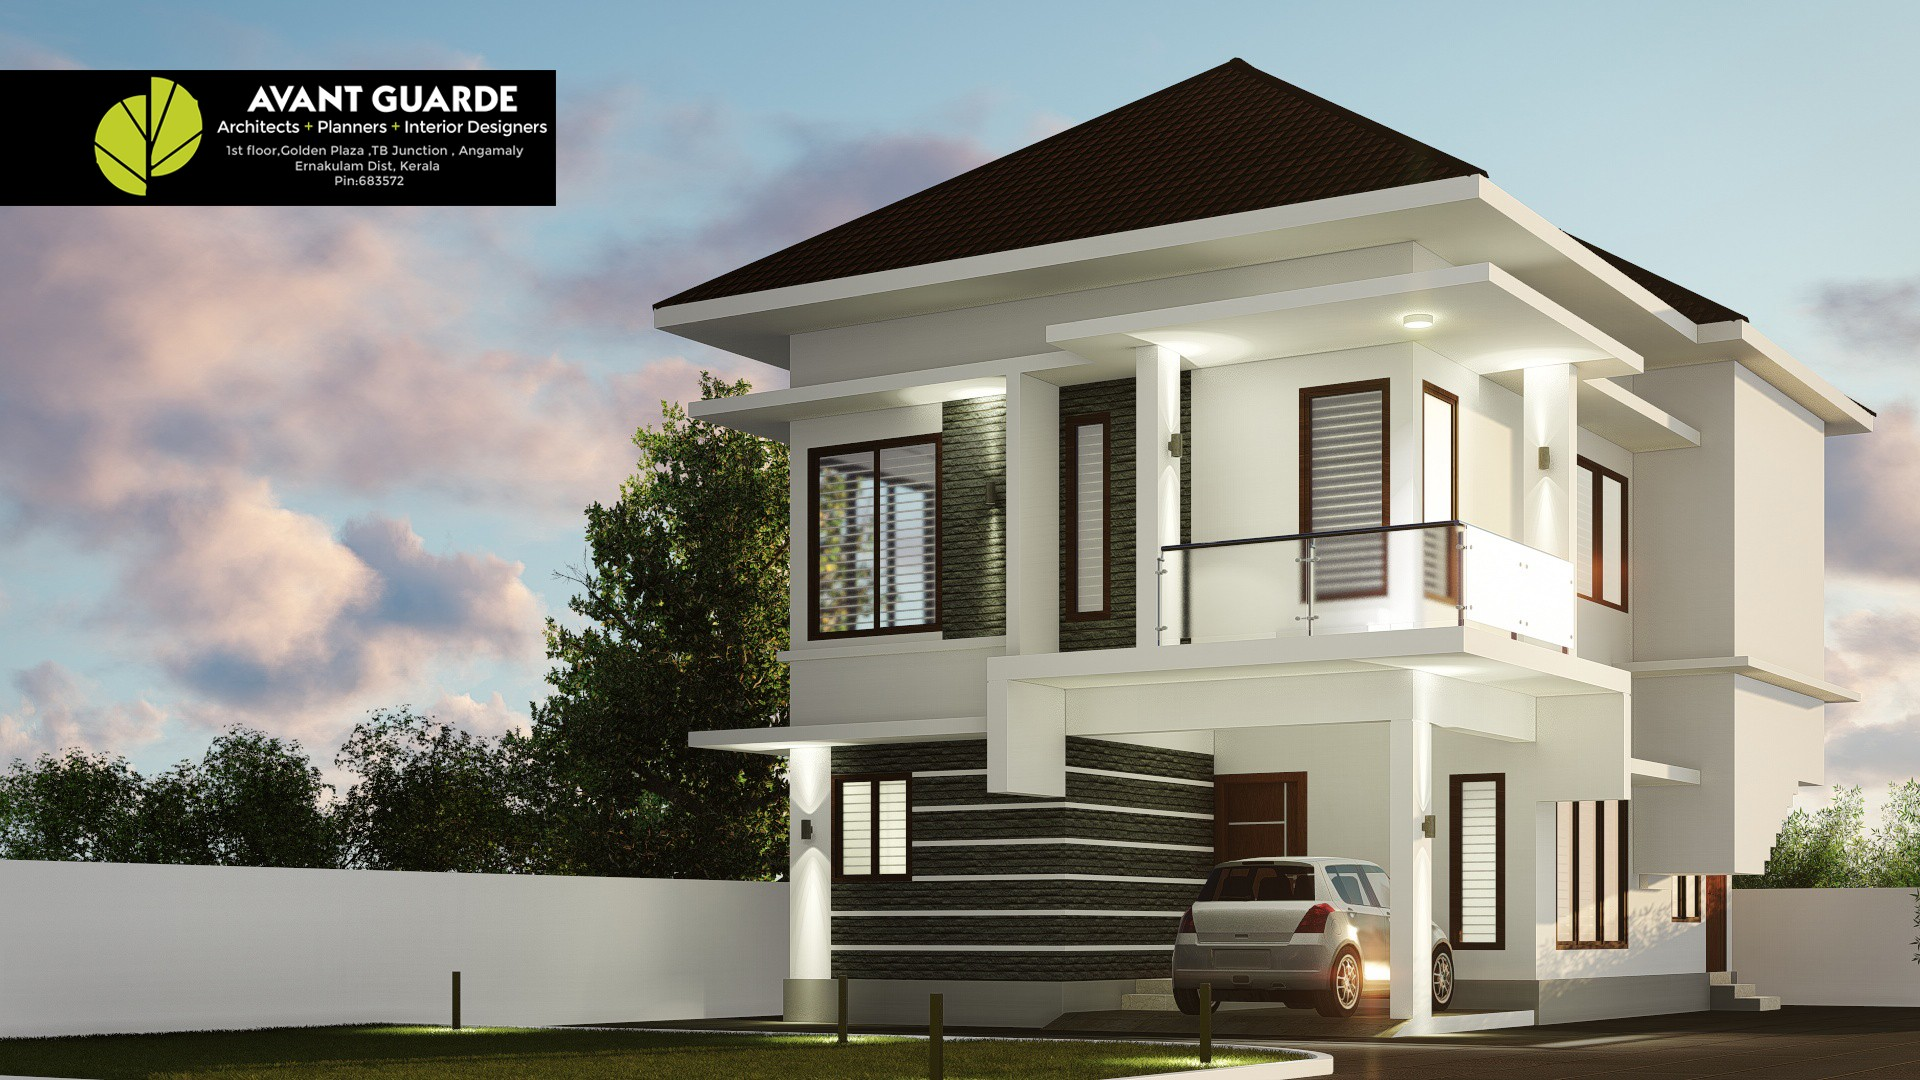 Avant Guarde Architects,Planners & Interior Designers